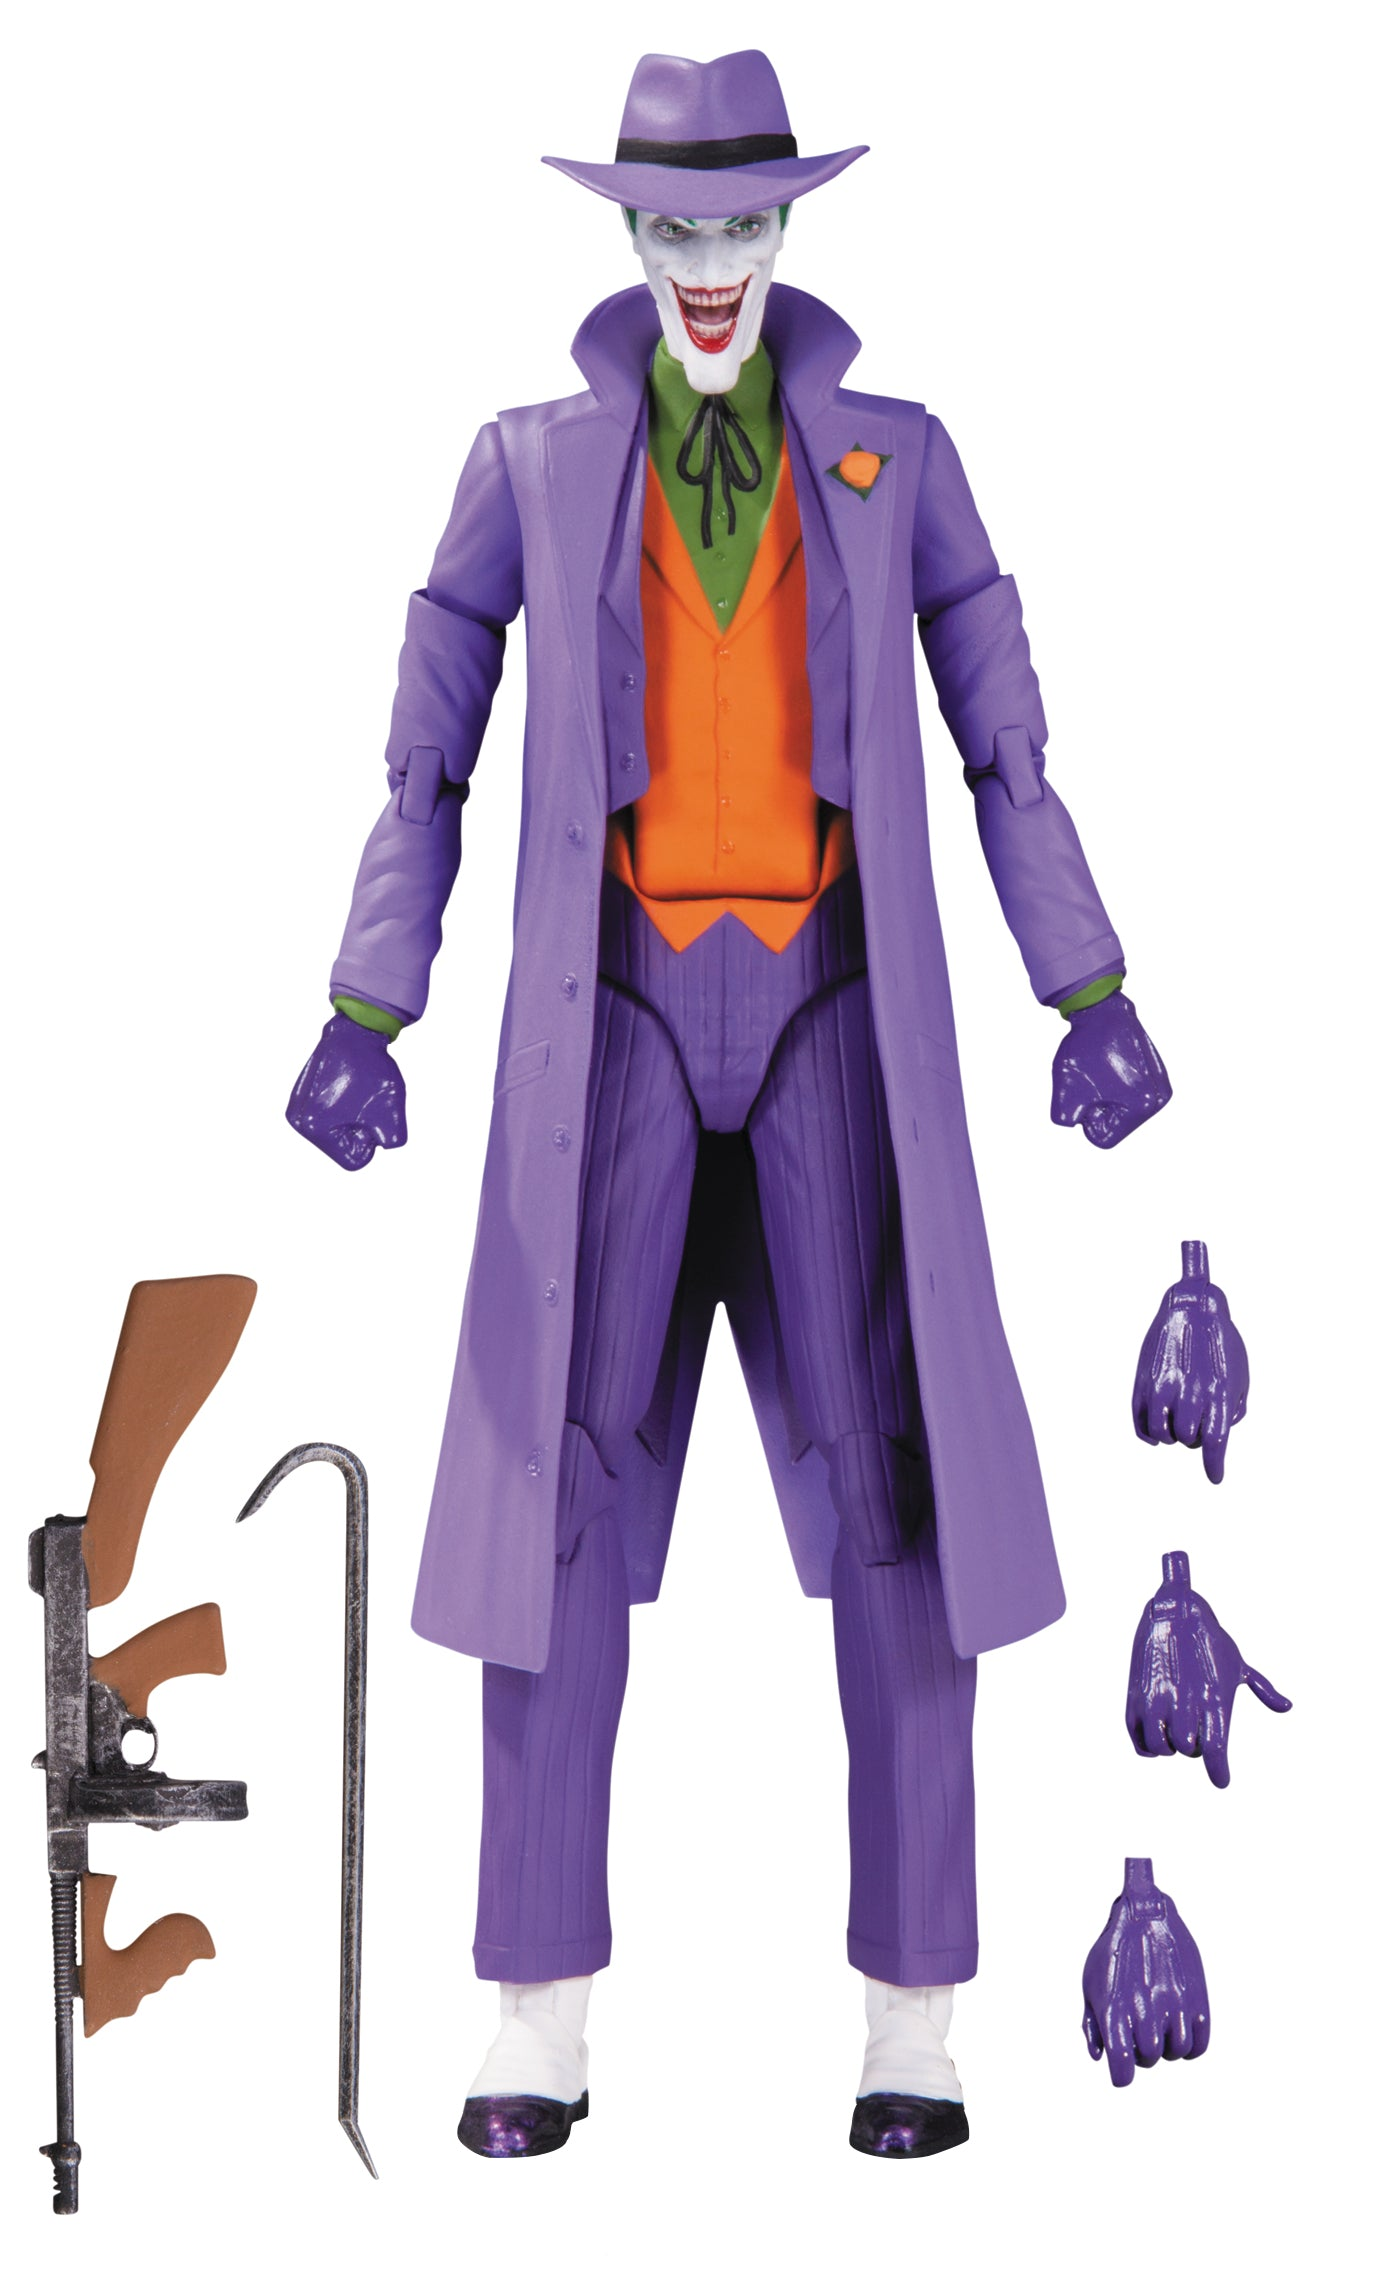 DC Icons Death in the Family Joker action figure